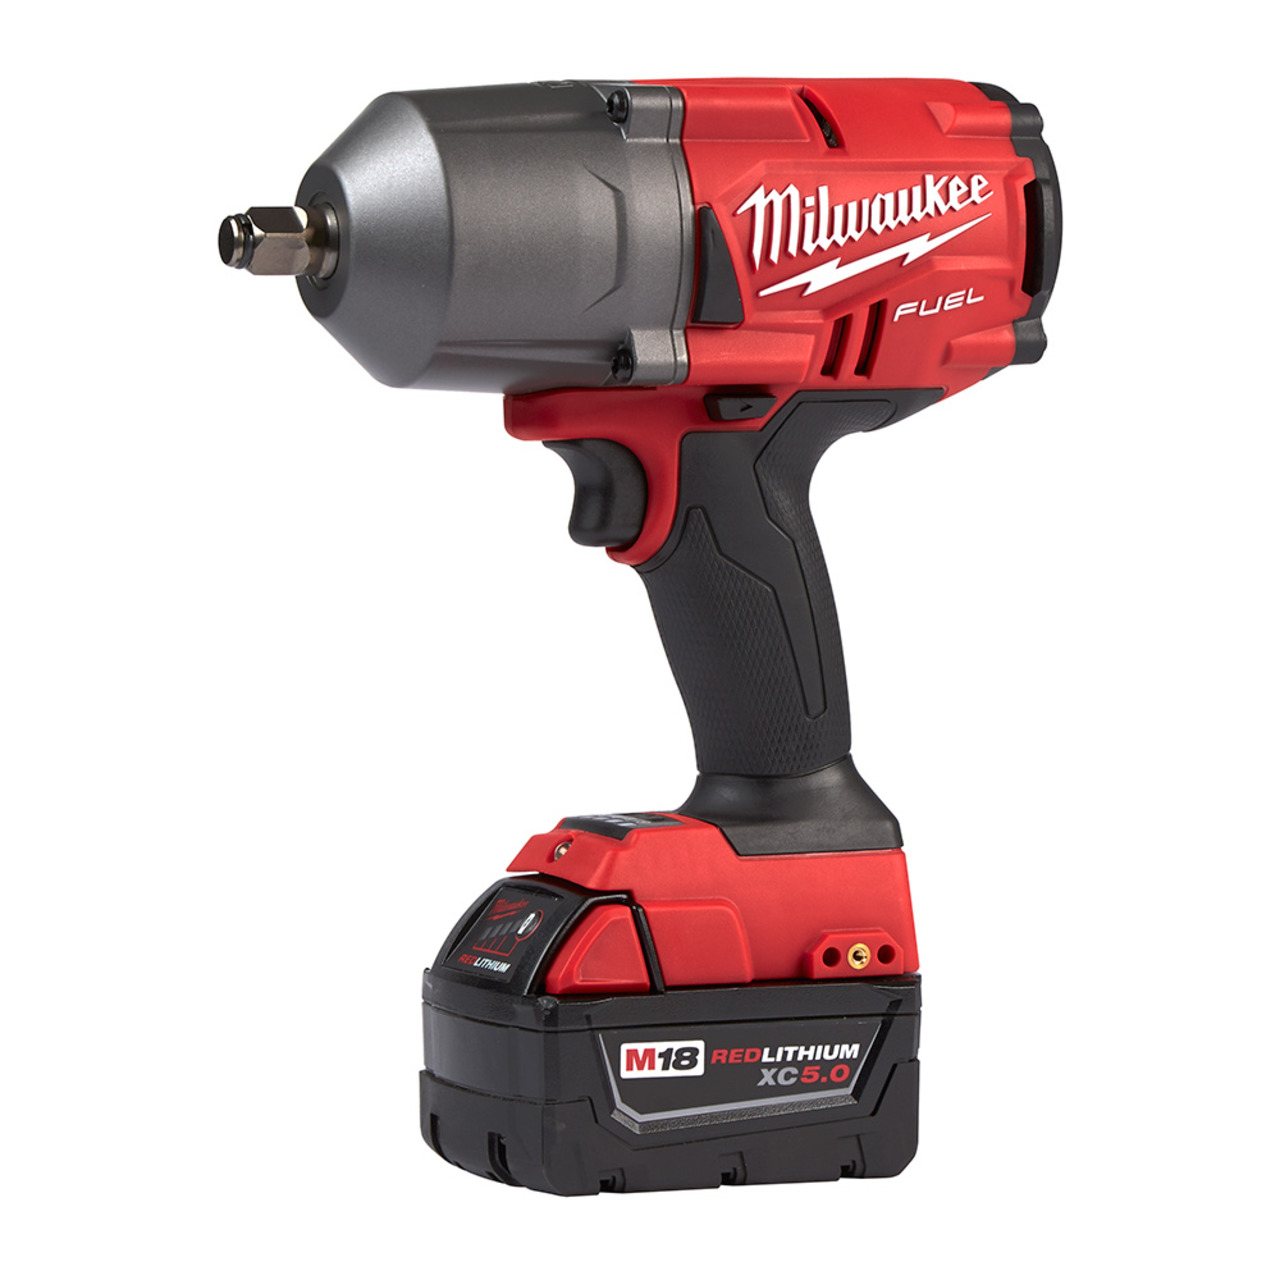 Tool Review Milwaukee M18 Fuel High Torque Impact Wrench With 1 2 Friction Ring